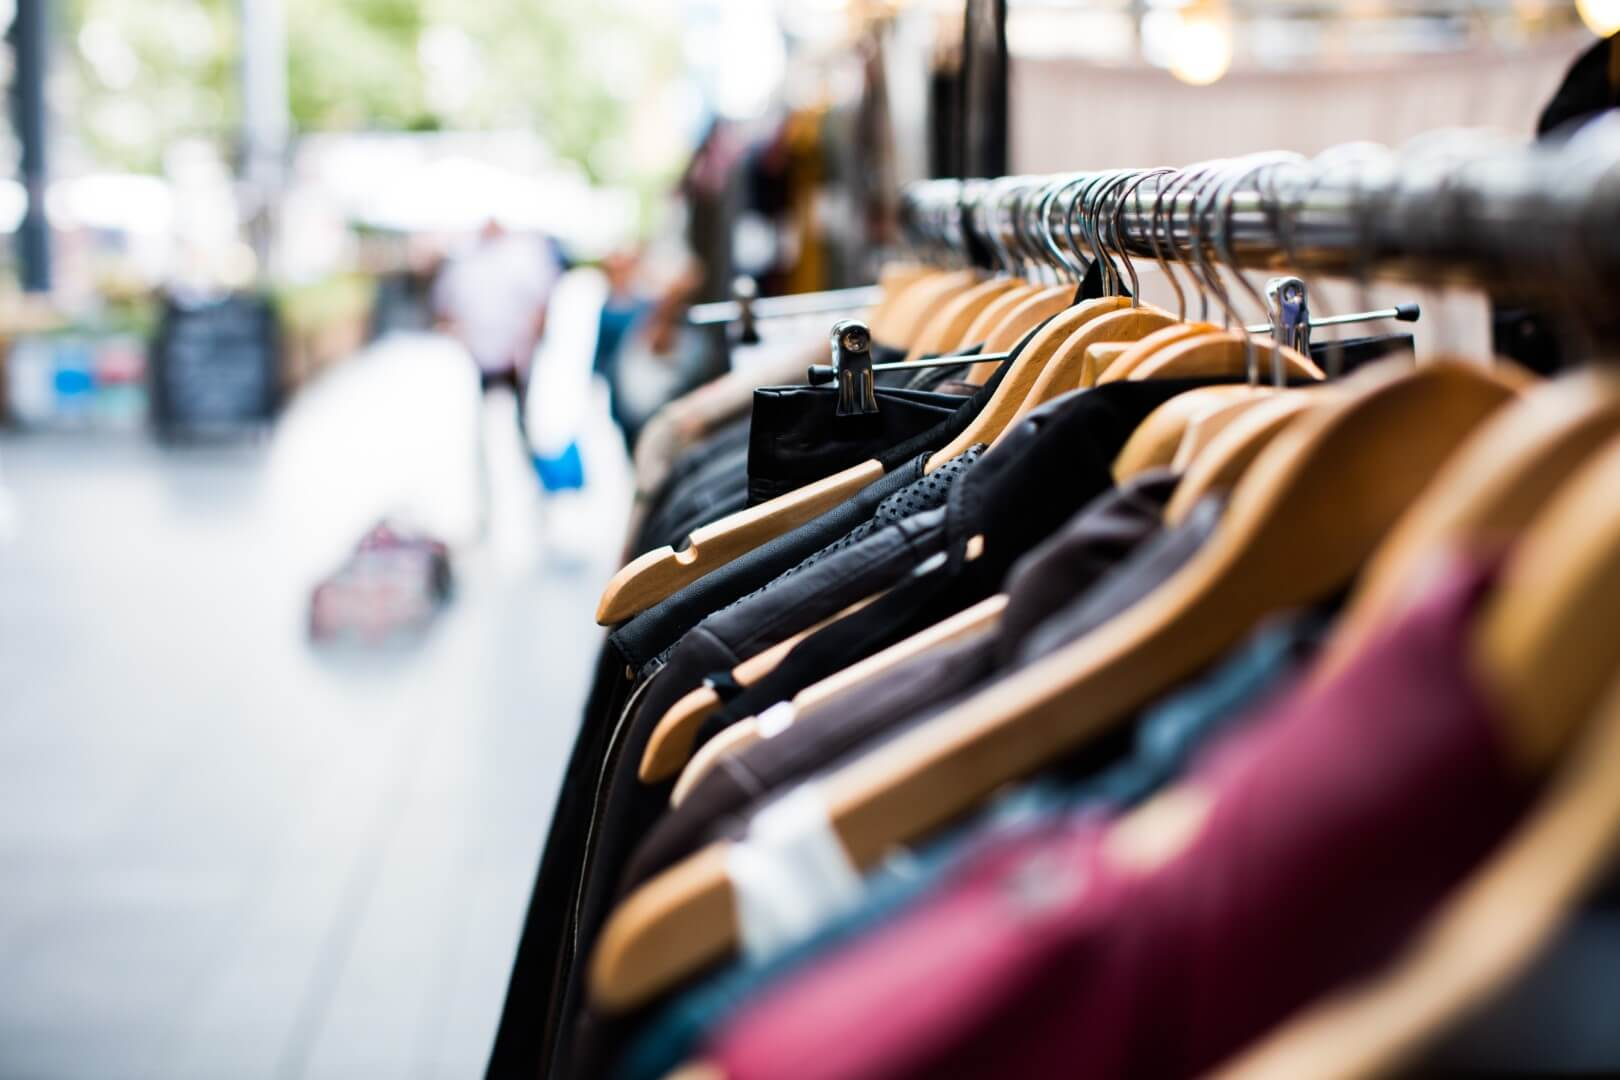 Best Online Thrift Stores to Find High-Quality Clothes